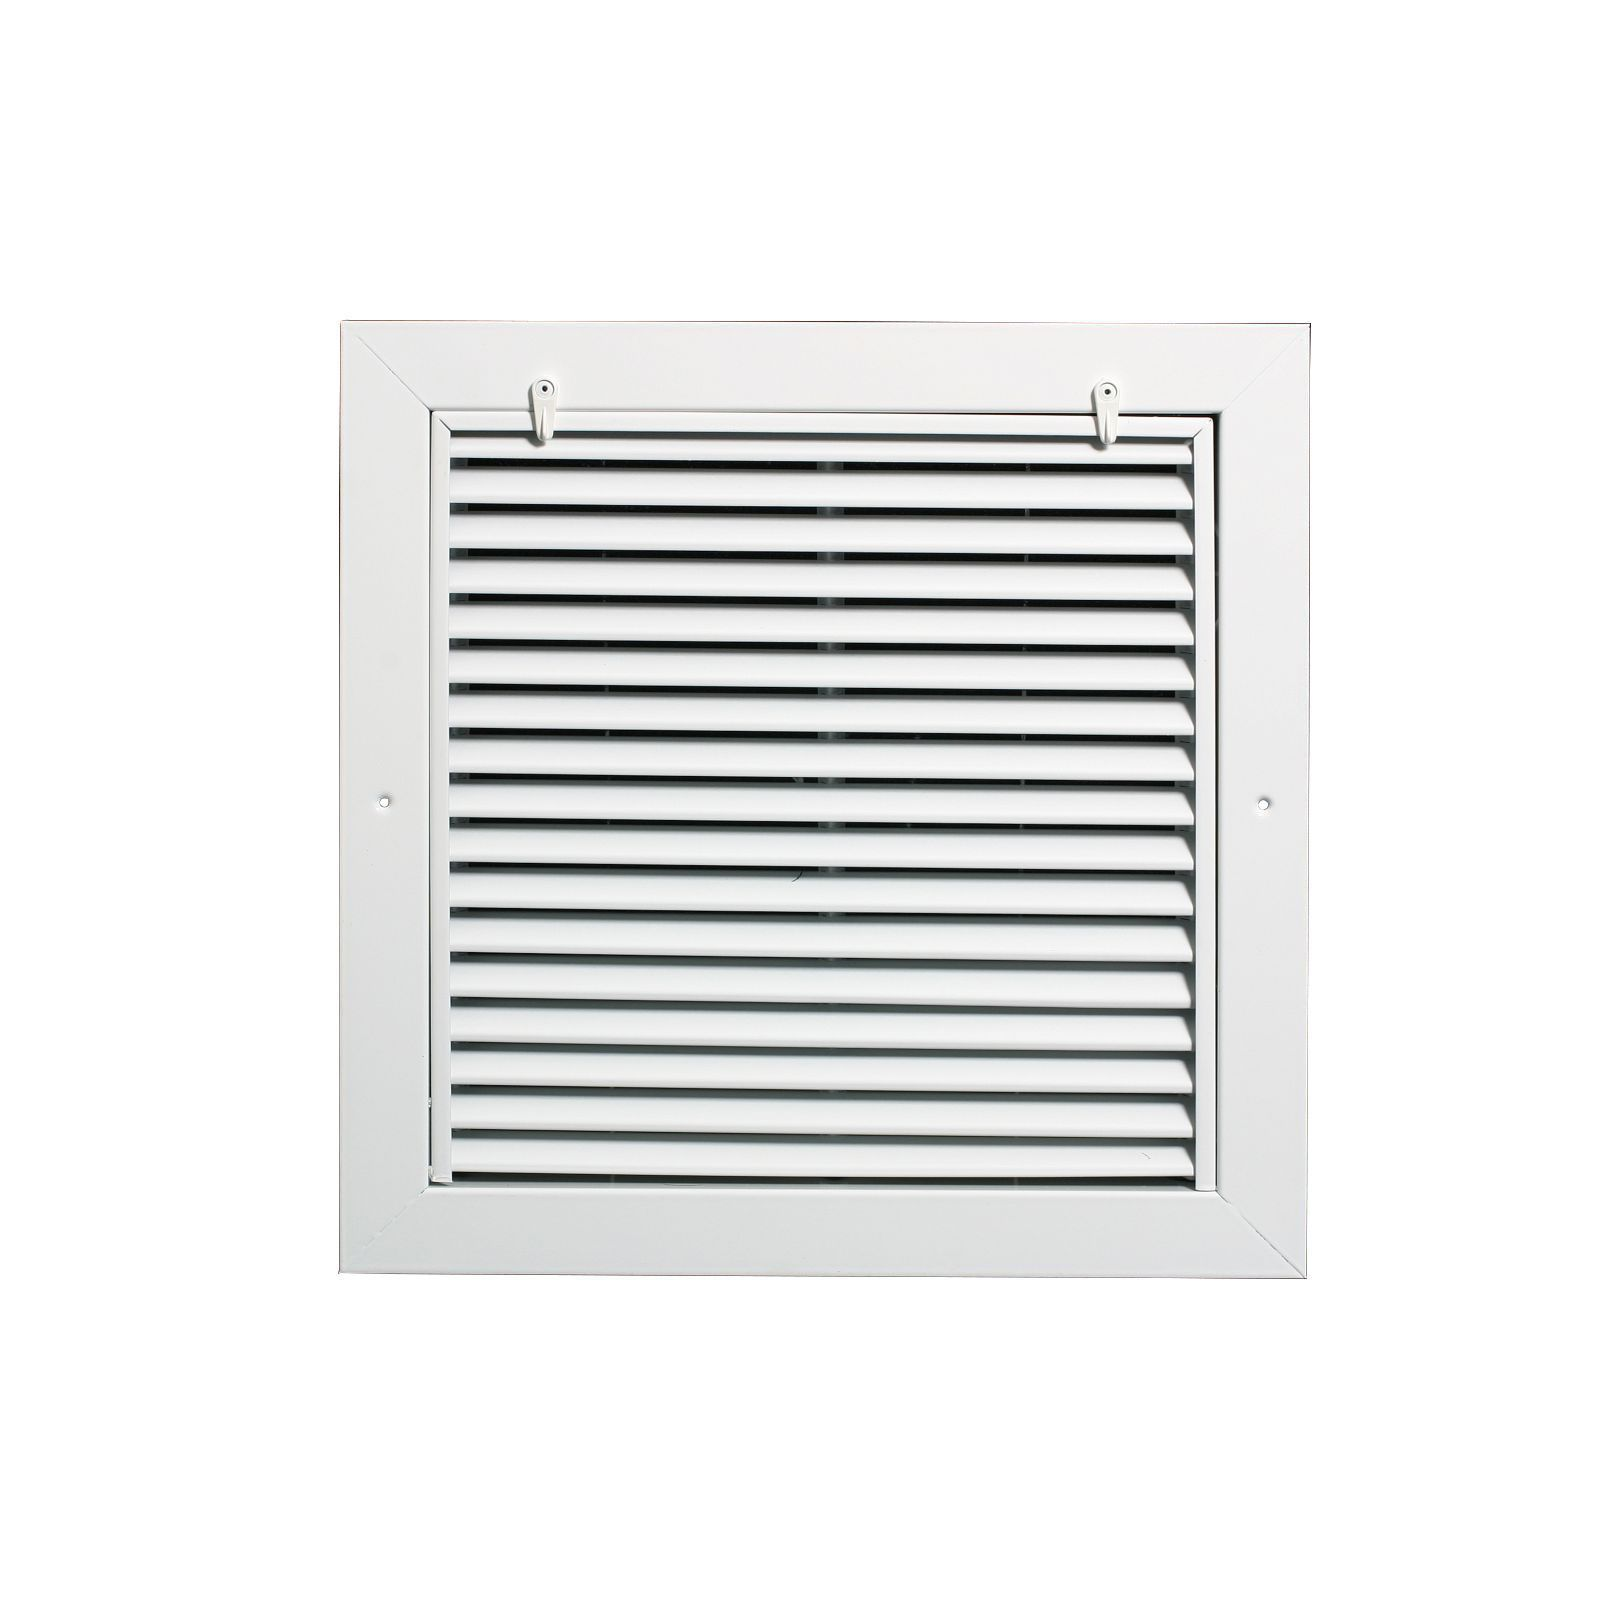 "Grille Tech RAFGS3020 - Aluminum Return Air Filter Grille, Grille Size 30"" X 20"" White"